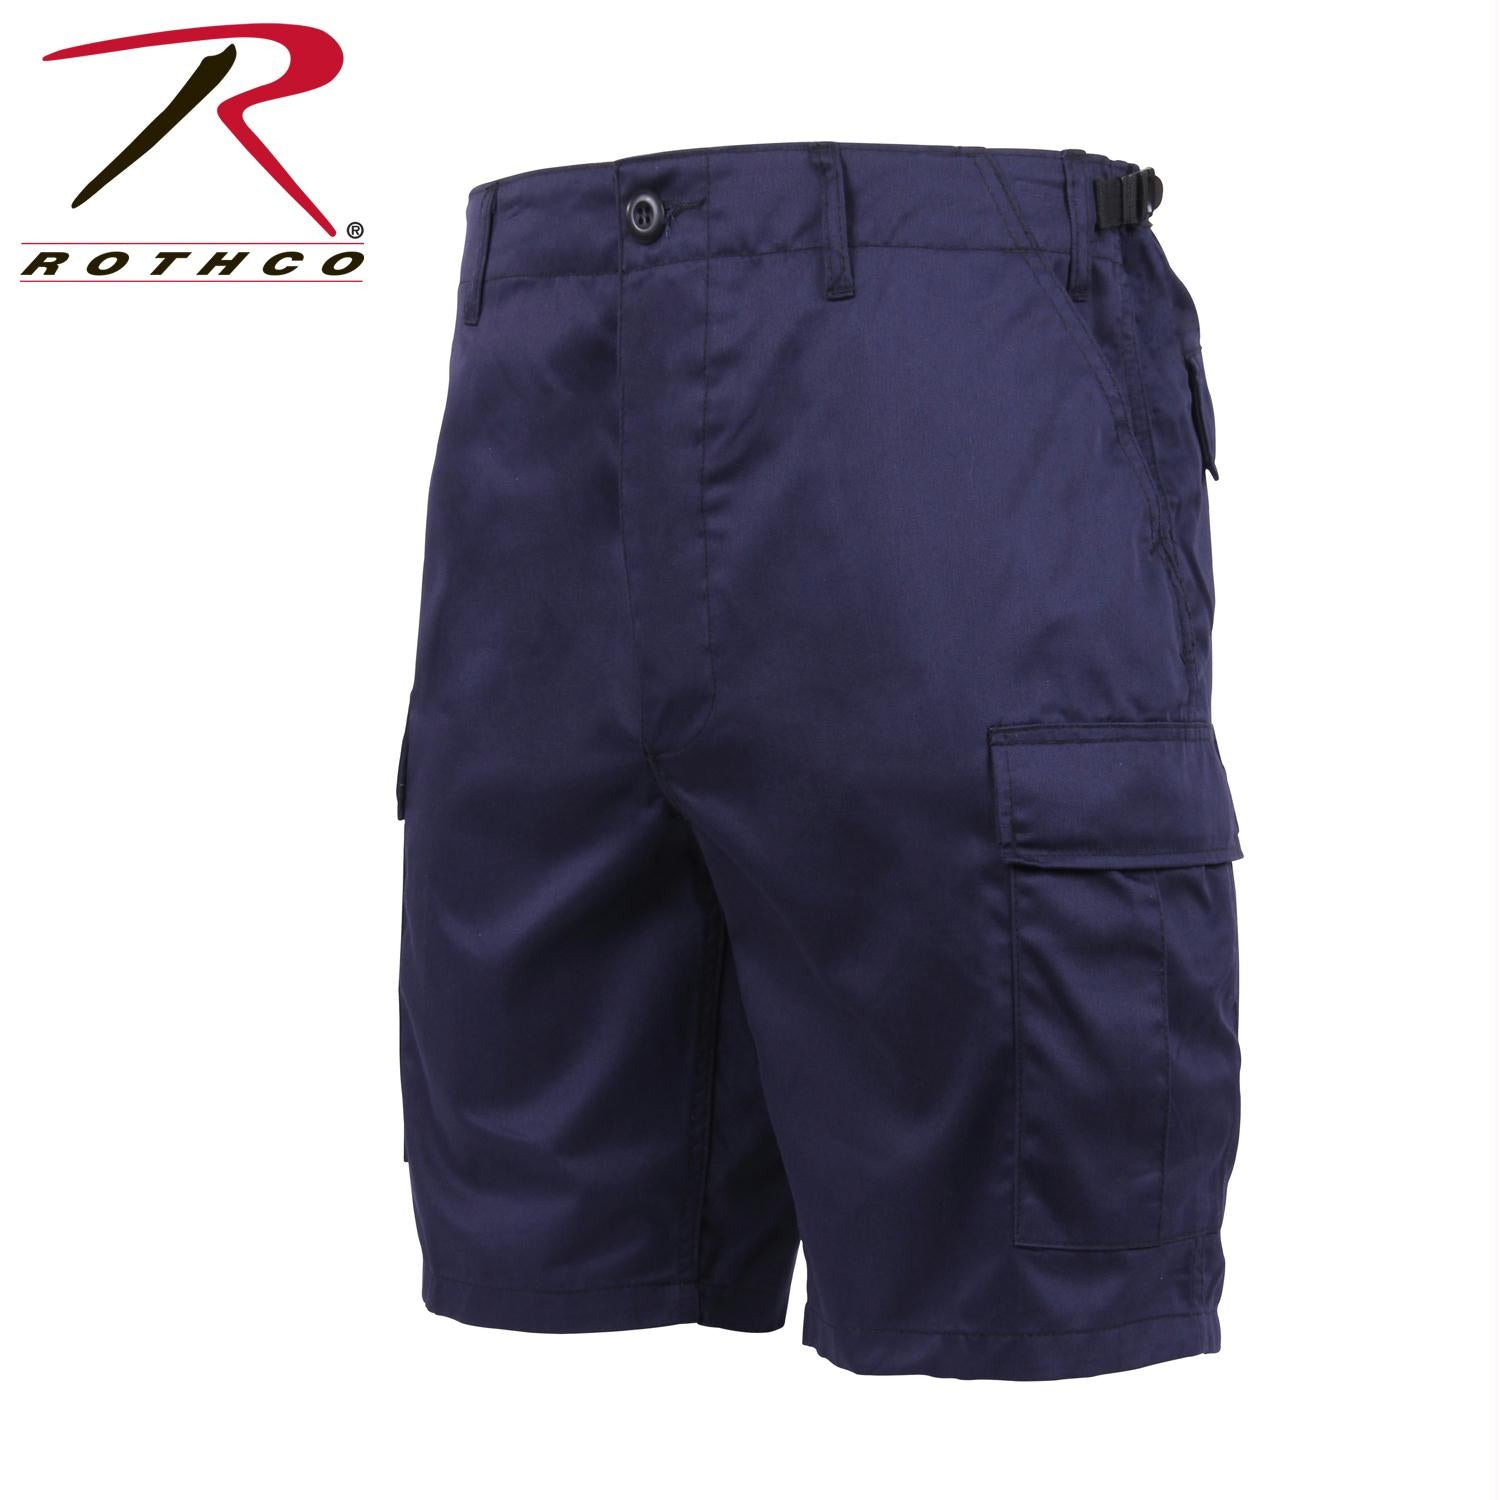 Rothco BDU Shorts - Midnight Navy Blue / XL